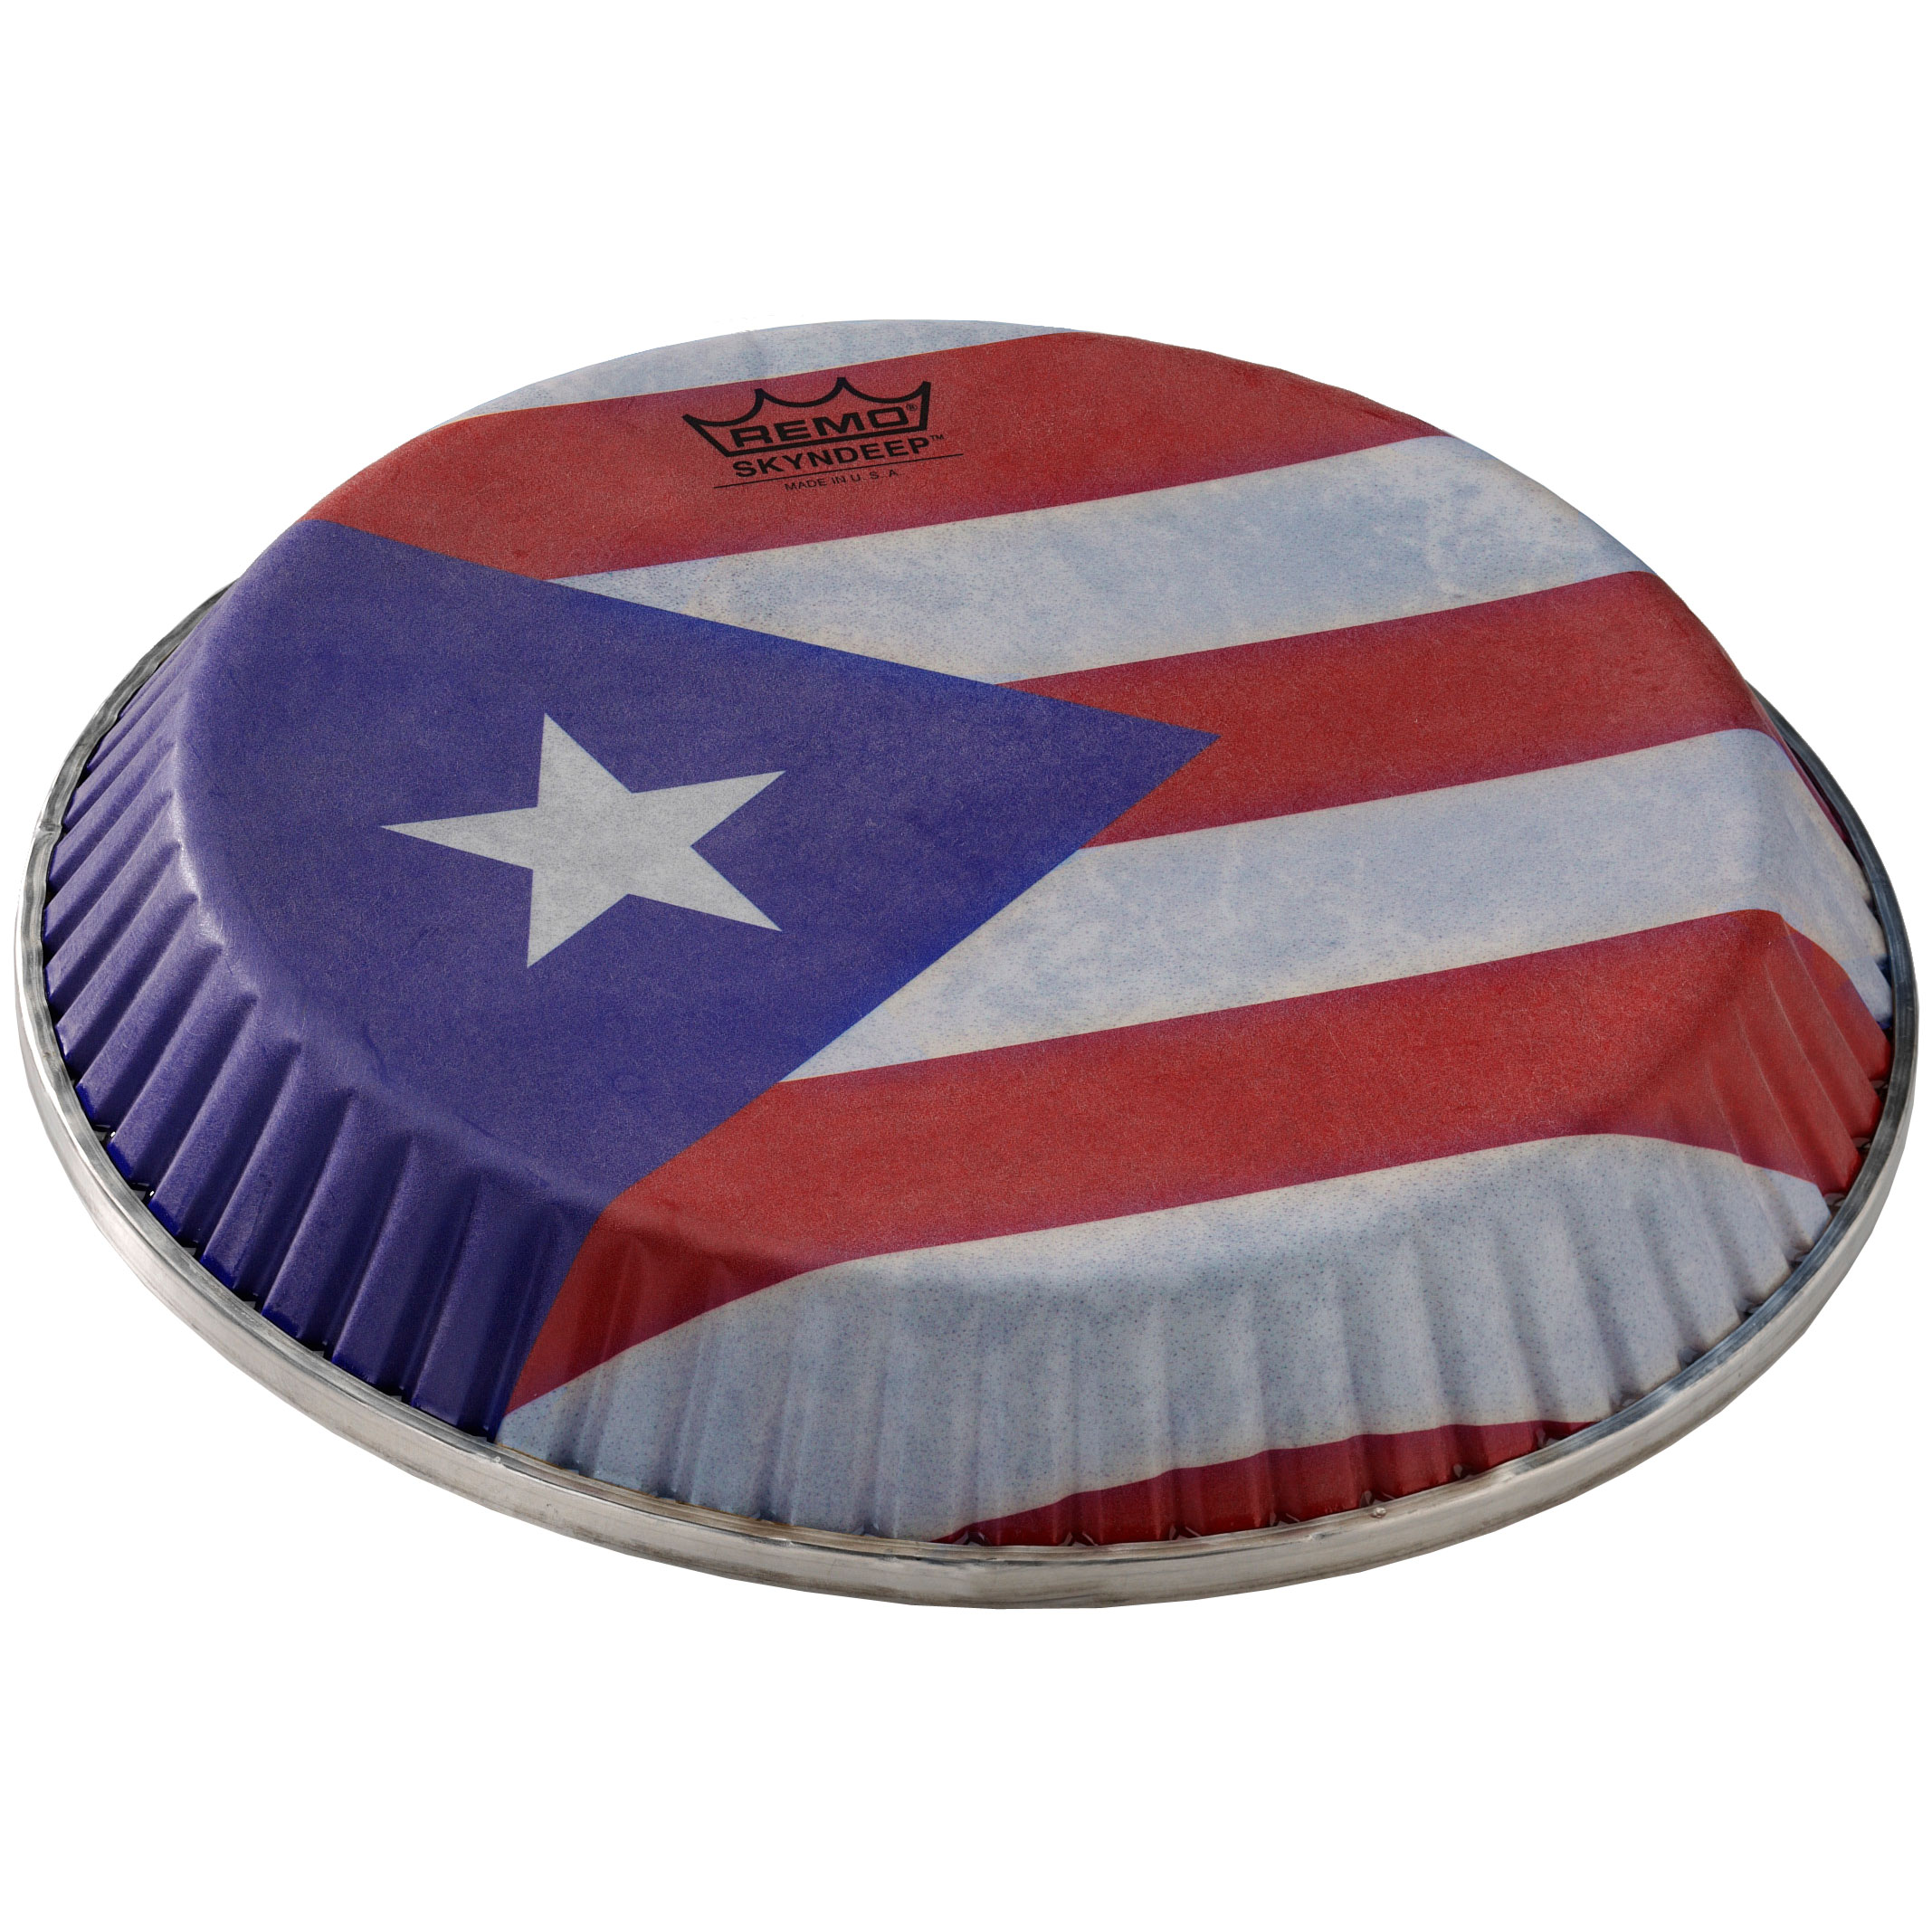 "Remo 11.75"" Symmetry Skyndeep Conga Drum Head (D3 Collar) with Puerto Rican Flag Graphic"